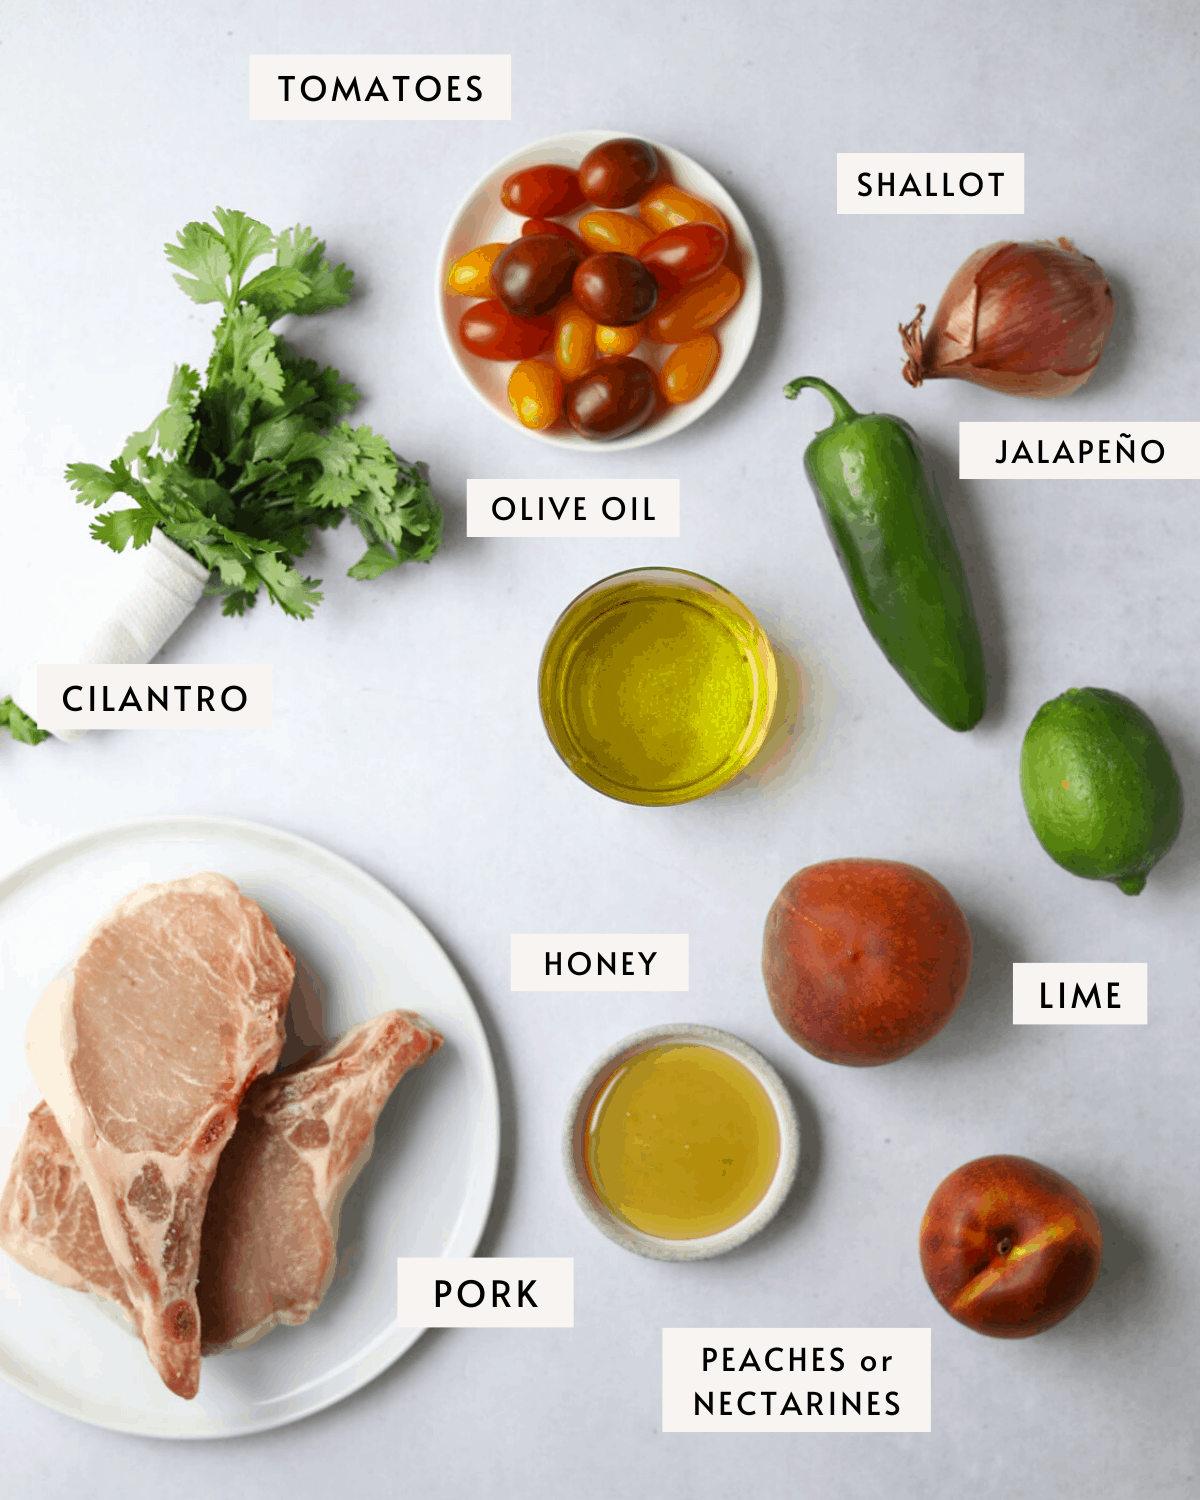 recipe ingredients, a plate of raw pork chops, a jalapeño, olive oil, honey, peaches, nectarines, shallot and cilantro